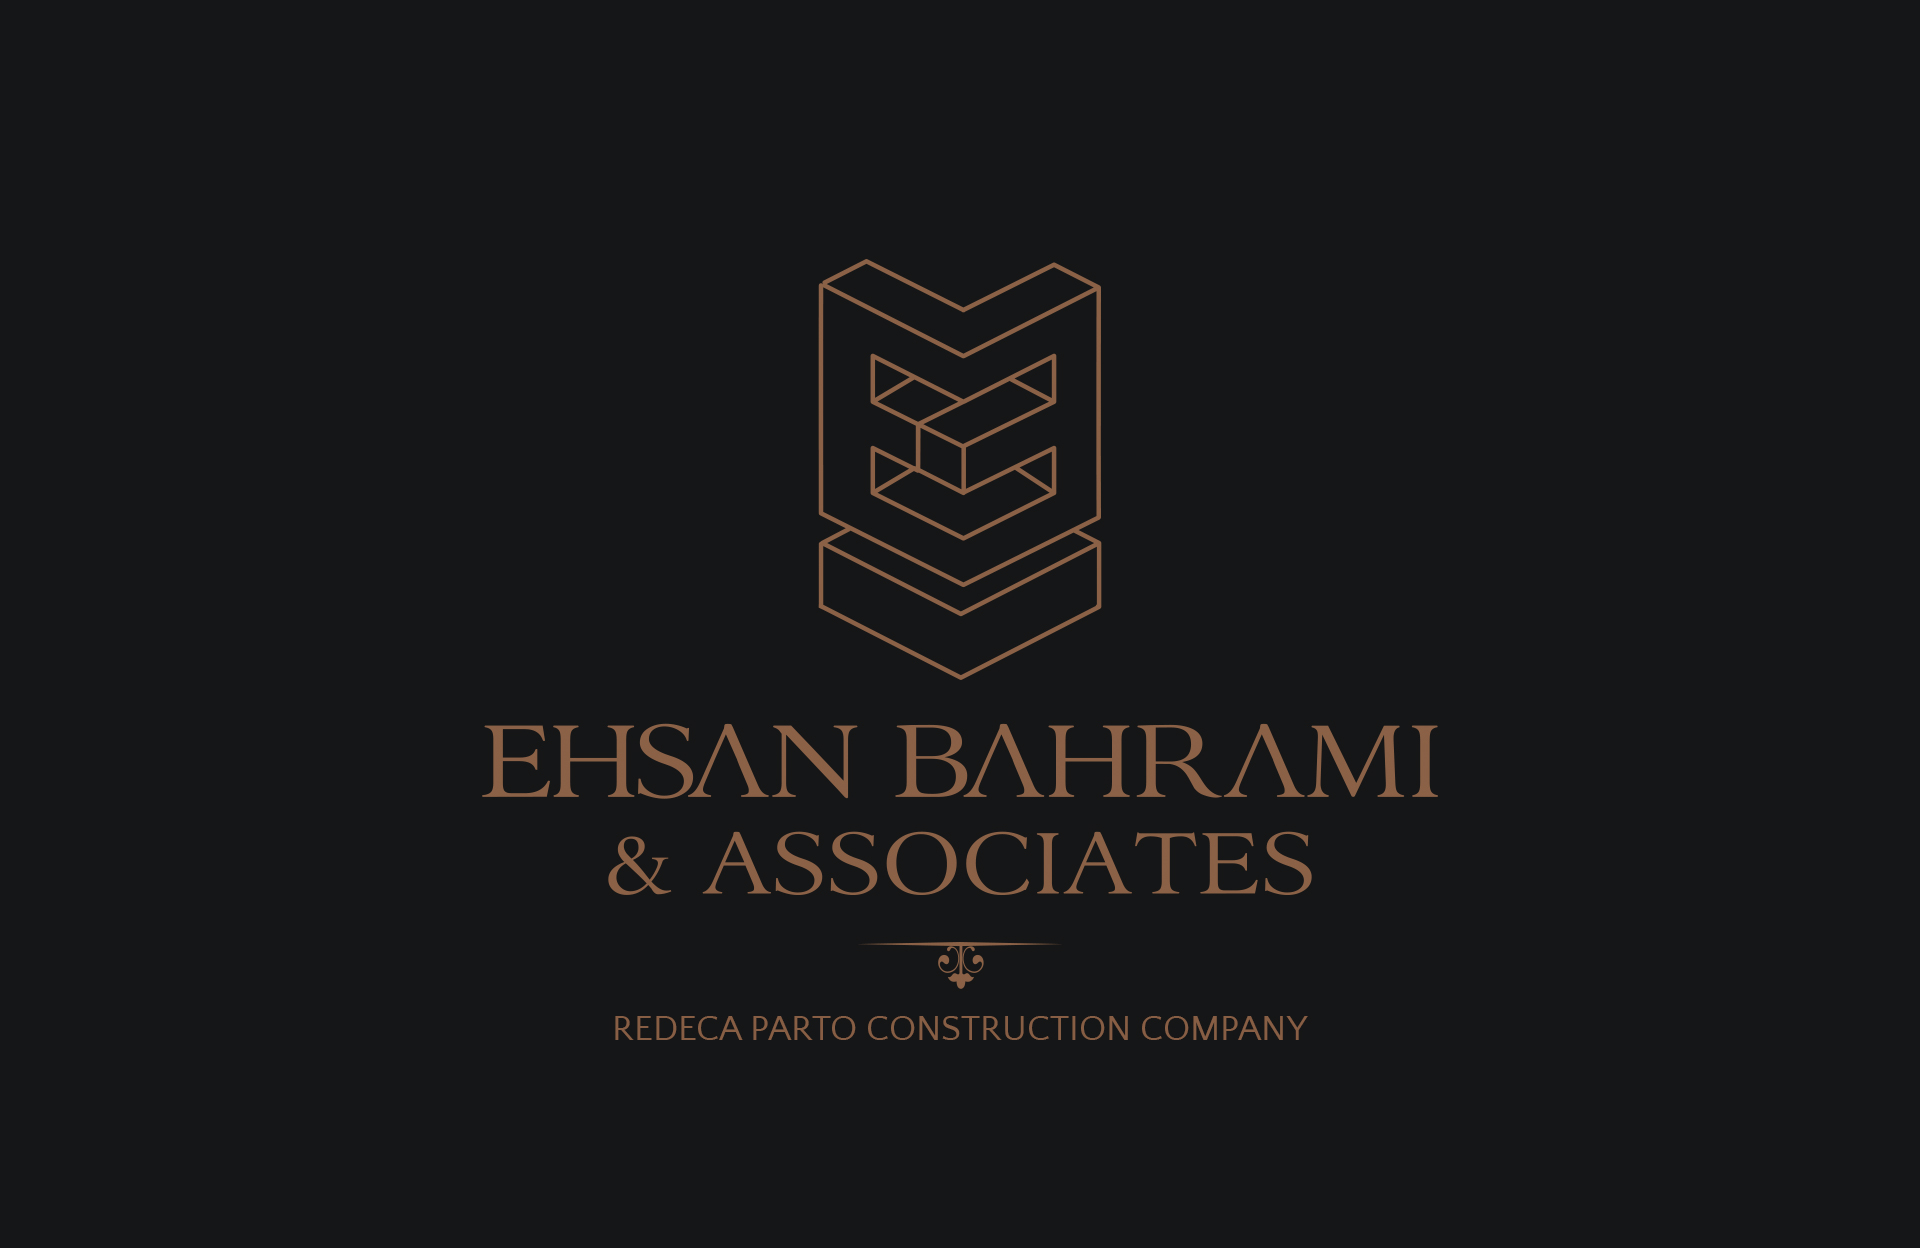 Ehsan Bahrami & Associates REBECA PARTO CONSTRUCTION COMPANY